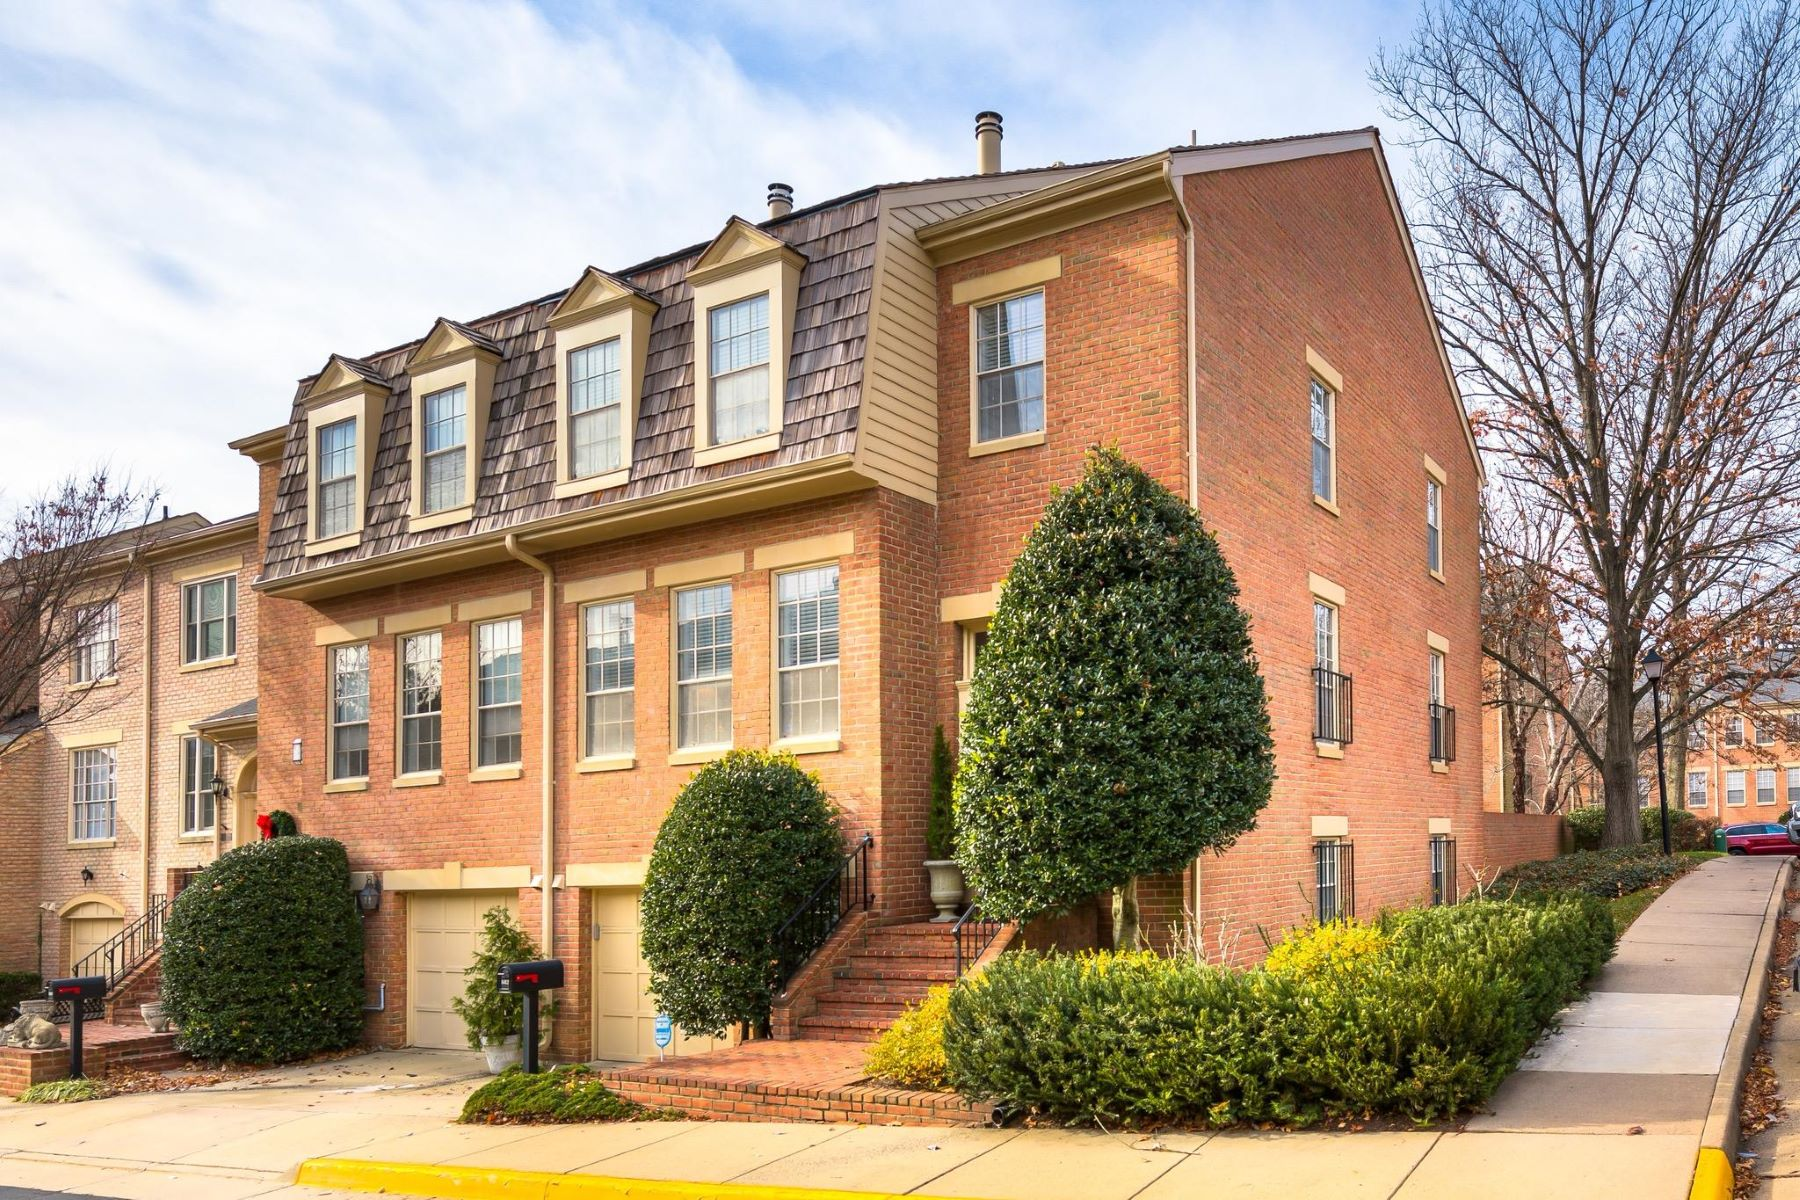 Townhouse for Sale at 1412 Mclean Mews Ct 1412 Mclean Mews Ct McLean, Virginia 22101 United States